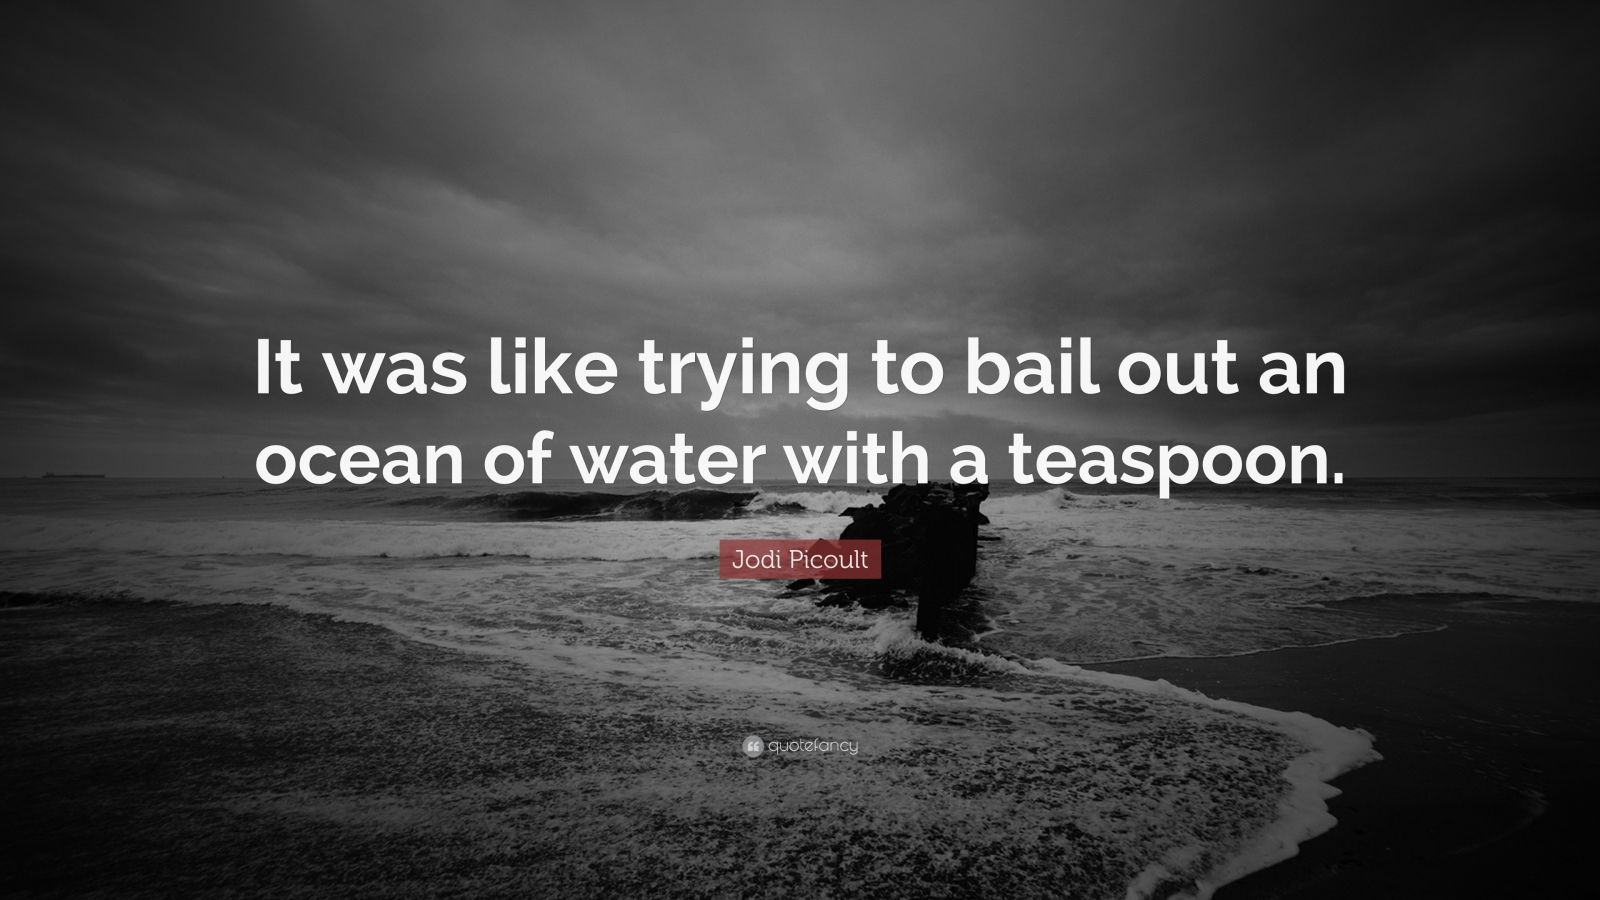 """Jodi Picoult Quote: """"It was like trying to bail out an ocean of water with a teaspoon."""""""